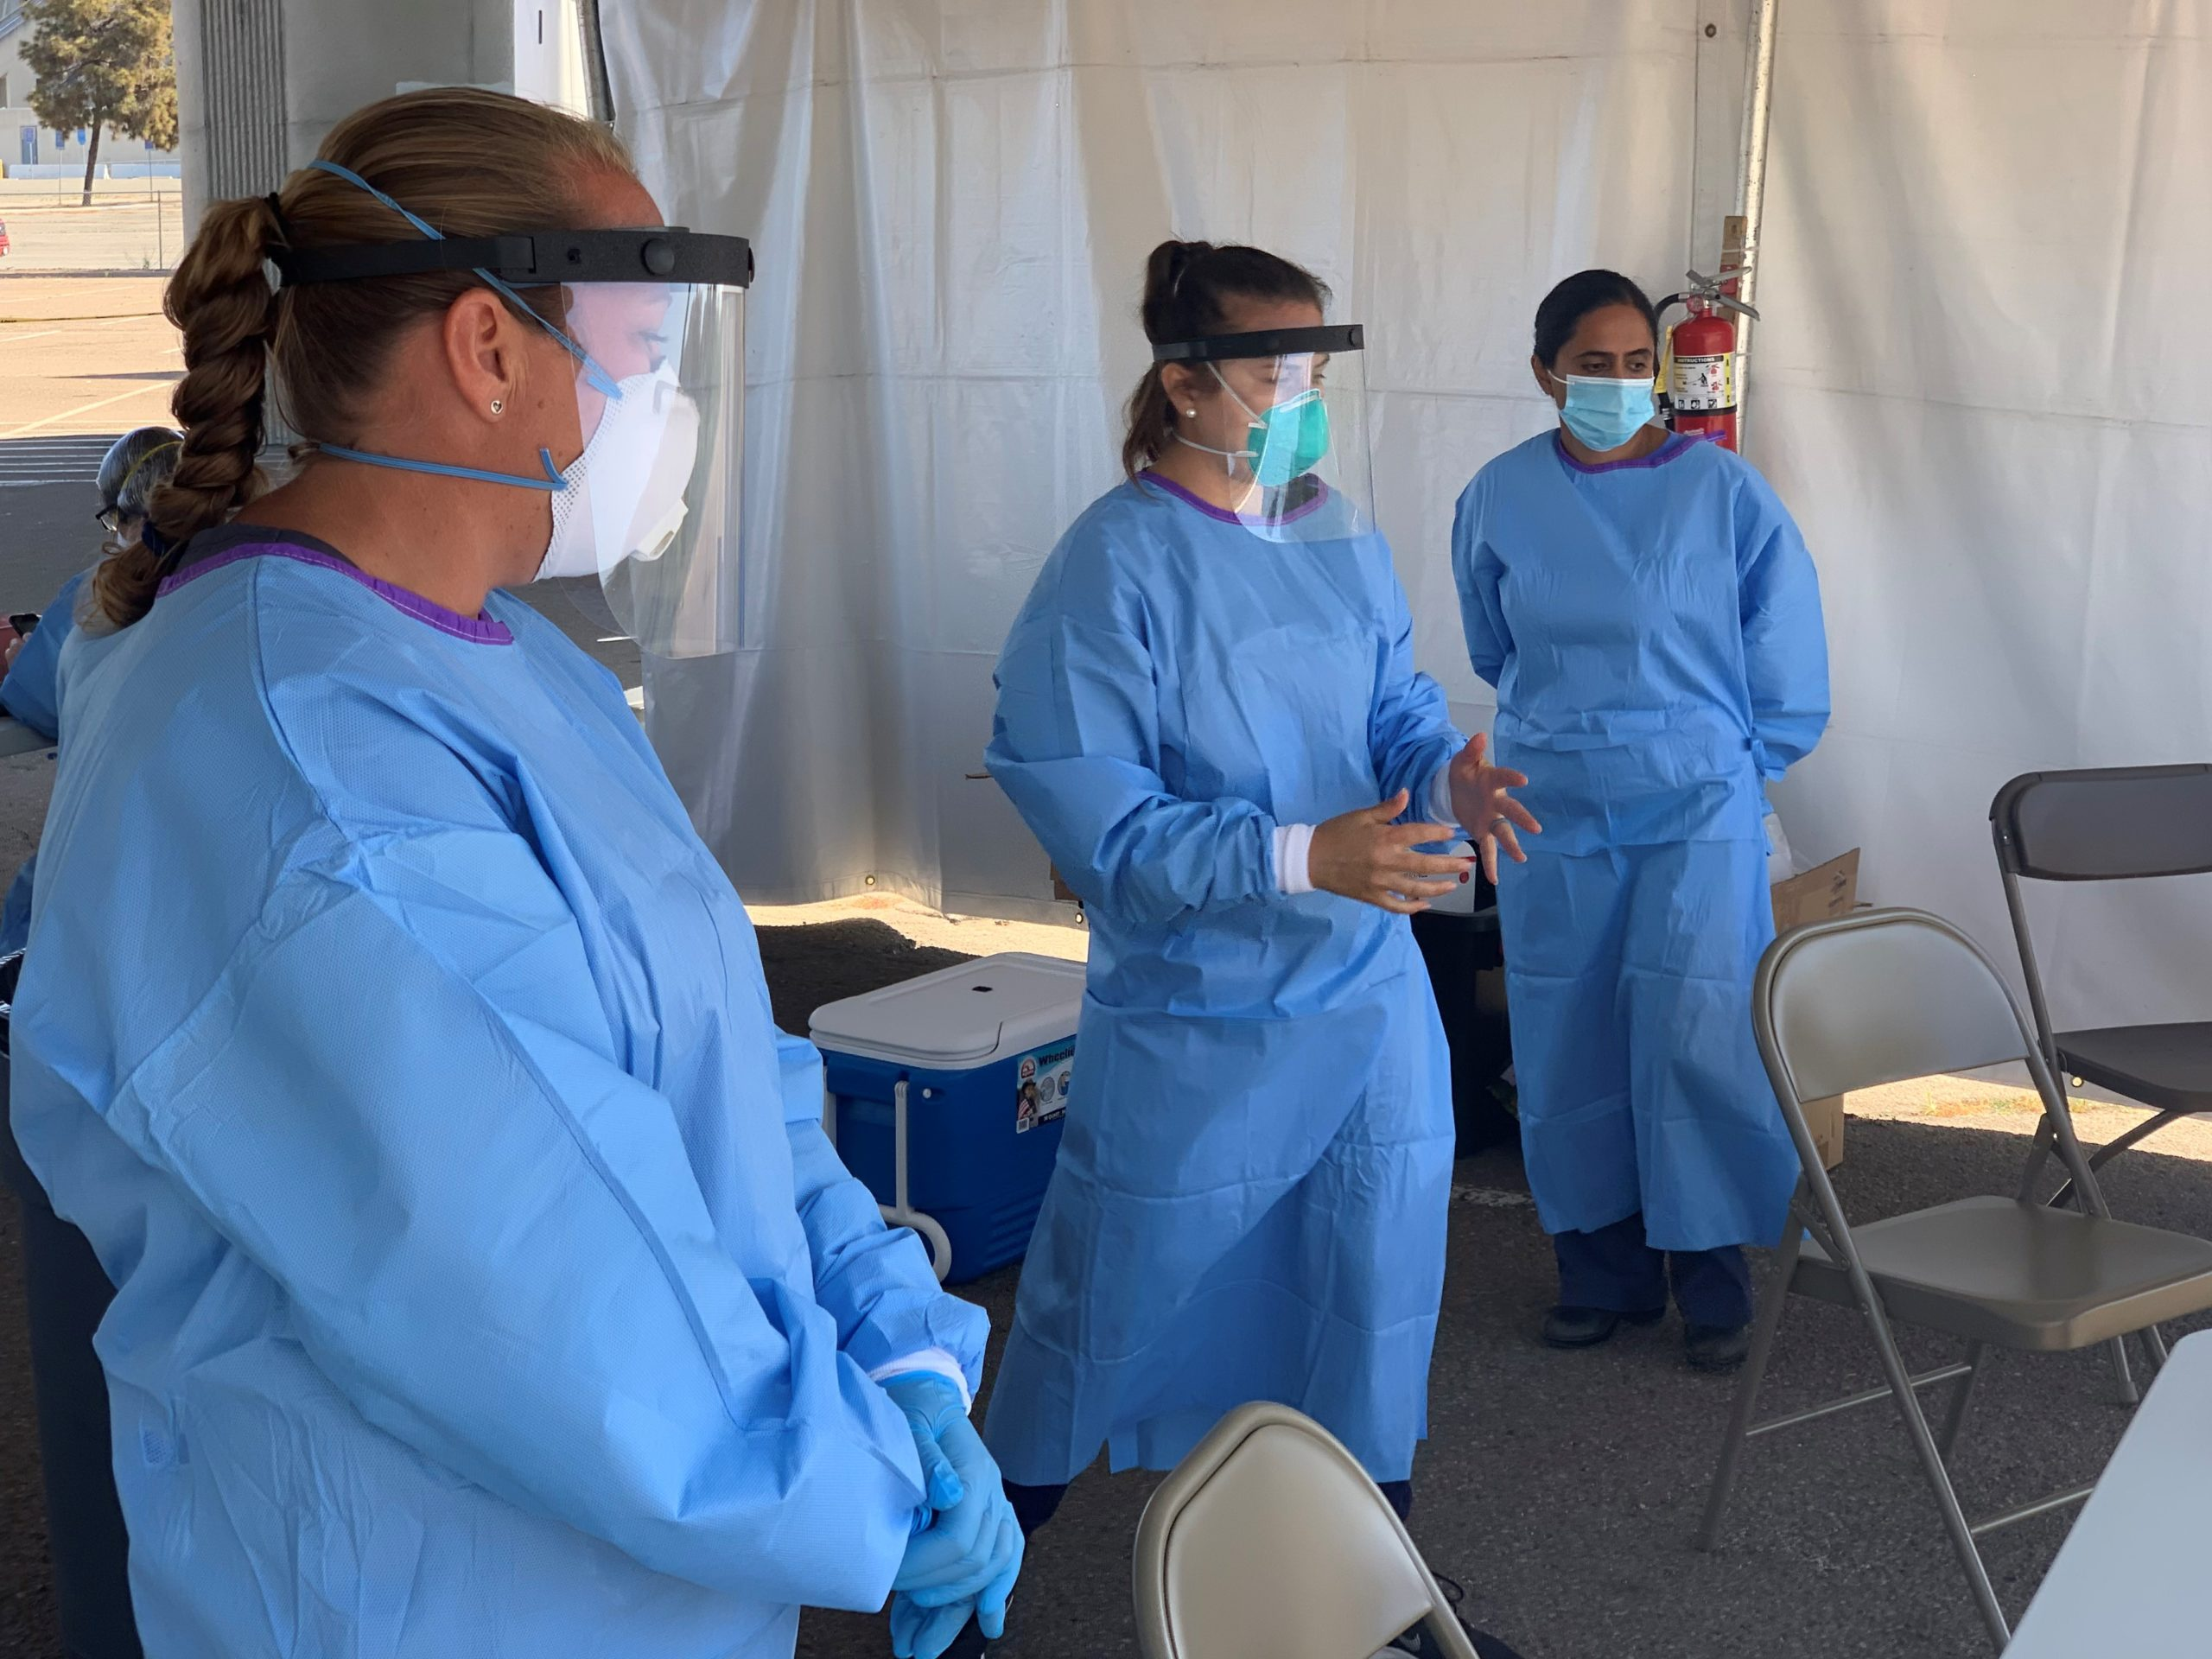 three people wearing protective gowns and masks